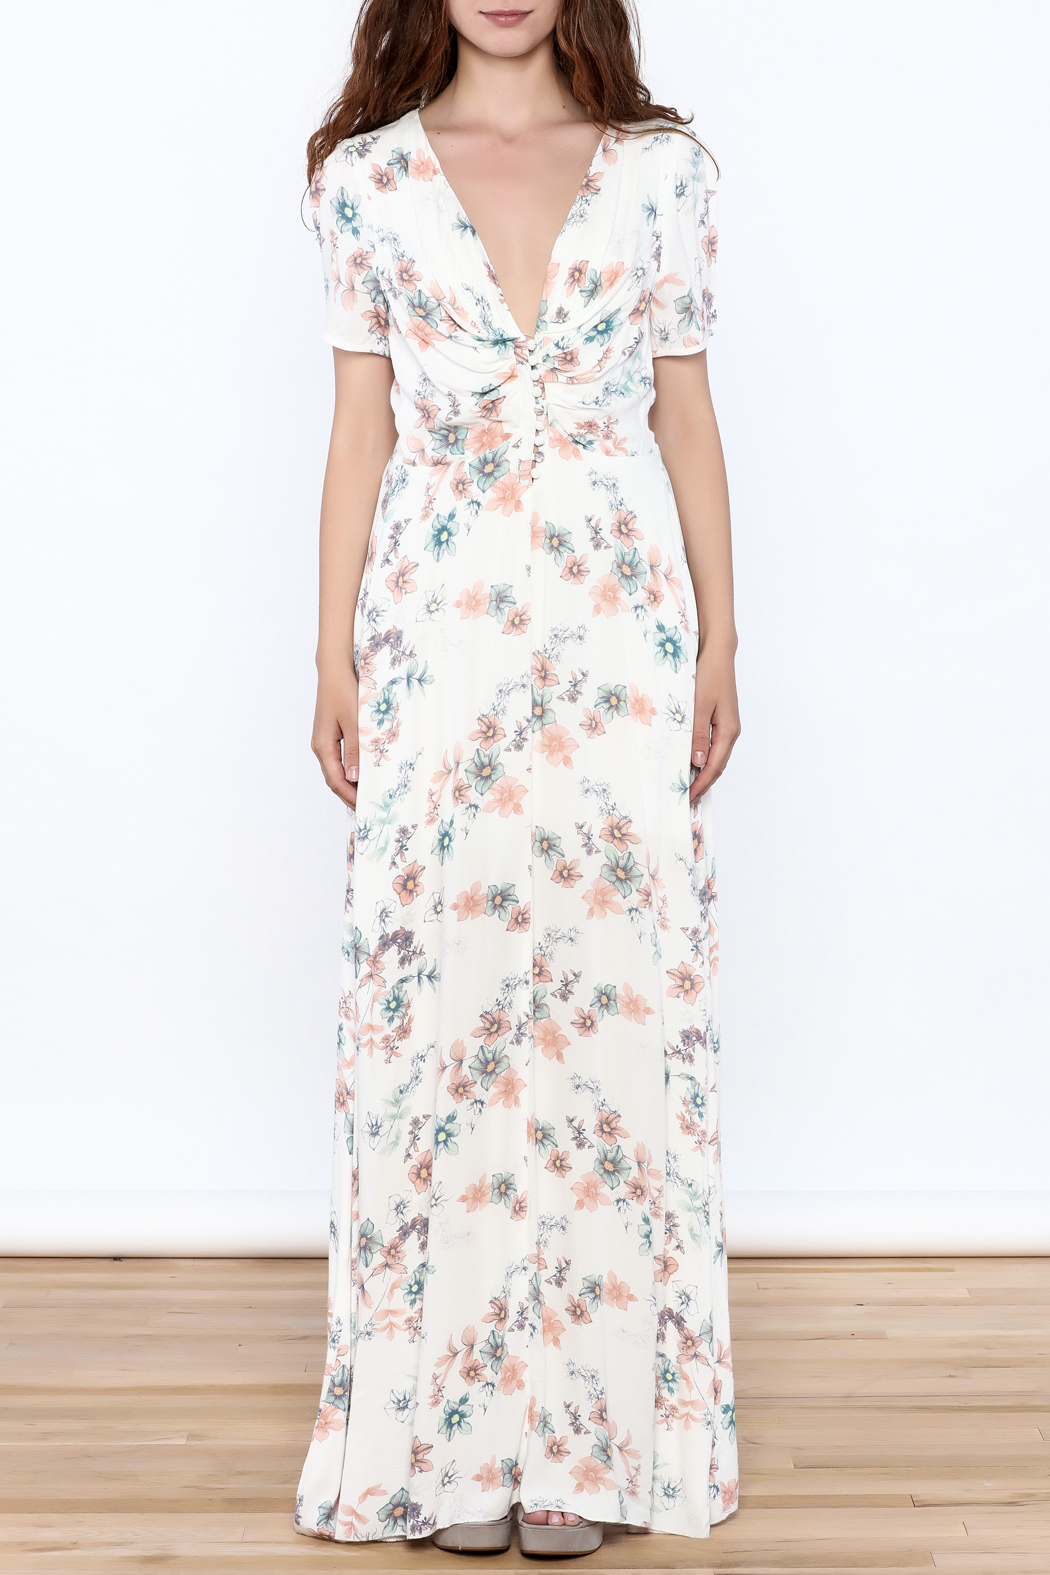 y&i clothing boutique Cream Floral Maxi Dress - Front Cropped Image